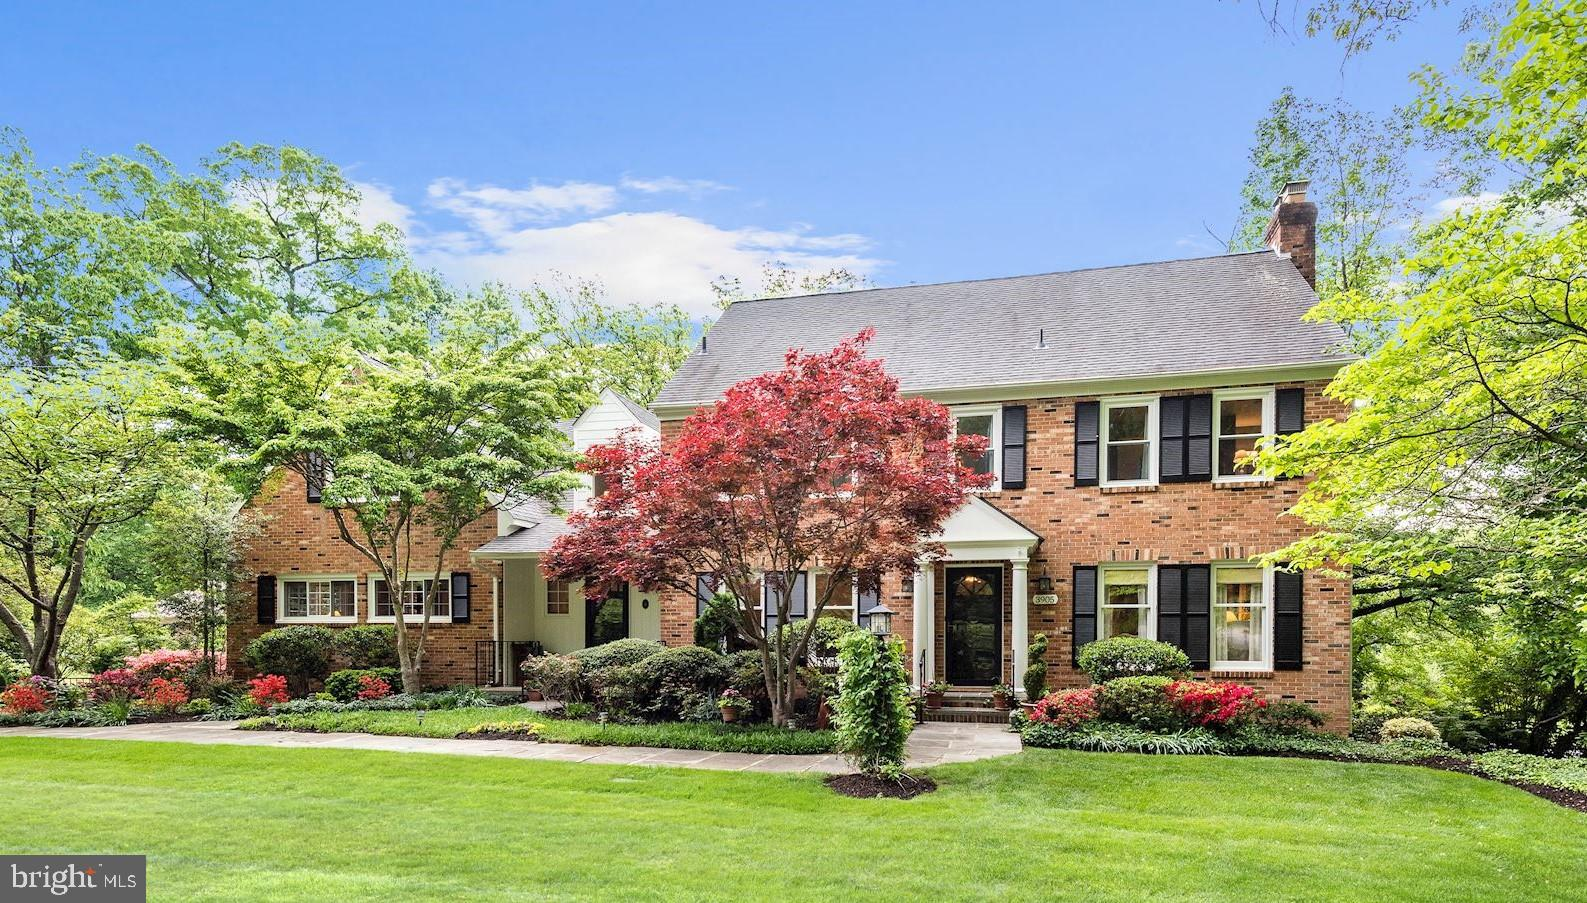 Located in the Belle Rive section of Mt Vernon, this beautiful and stately colonial not only offers elegant and casual living but also a garden that creates a private oasis just minutes from DC, Old Town and Arlington. It sits on a quiet cul-de-sac and features 5 bedrooms with a Master Suite and a lower level suite for a guest, in-law or nanny. The main floor features an expansive formal living and dining room for entertaining and a two-story family room off the kitchen for family enjoyment and gatherings. Upper level has four bedrooms with in-room sinks and large closets. Extra living space includes two office/libraries, a loft as well as a great room for family night games and media entertainment. This house has been meticulously maintained with upgrades and renovations over the years. Neutral colors abound throughout the home making it move-in ready!